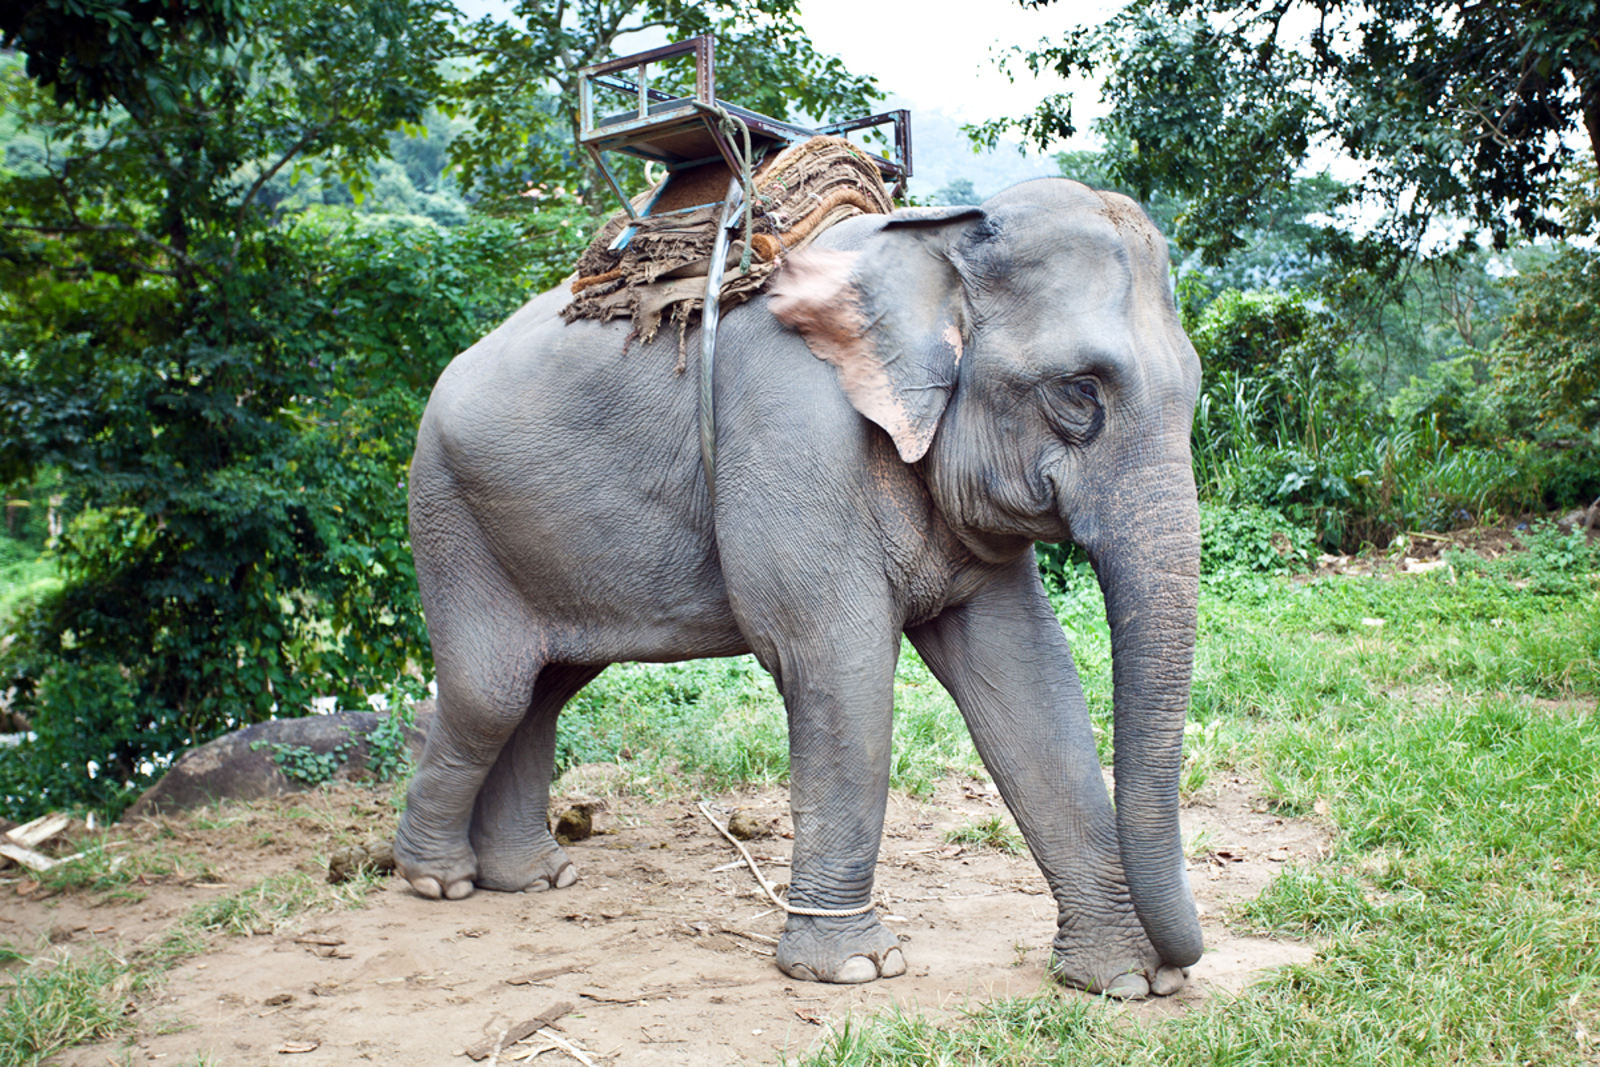 Elephant Trekking Endangers Both People and Animals: Why it Should Be Avoided at all Costs